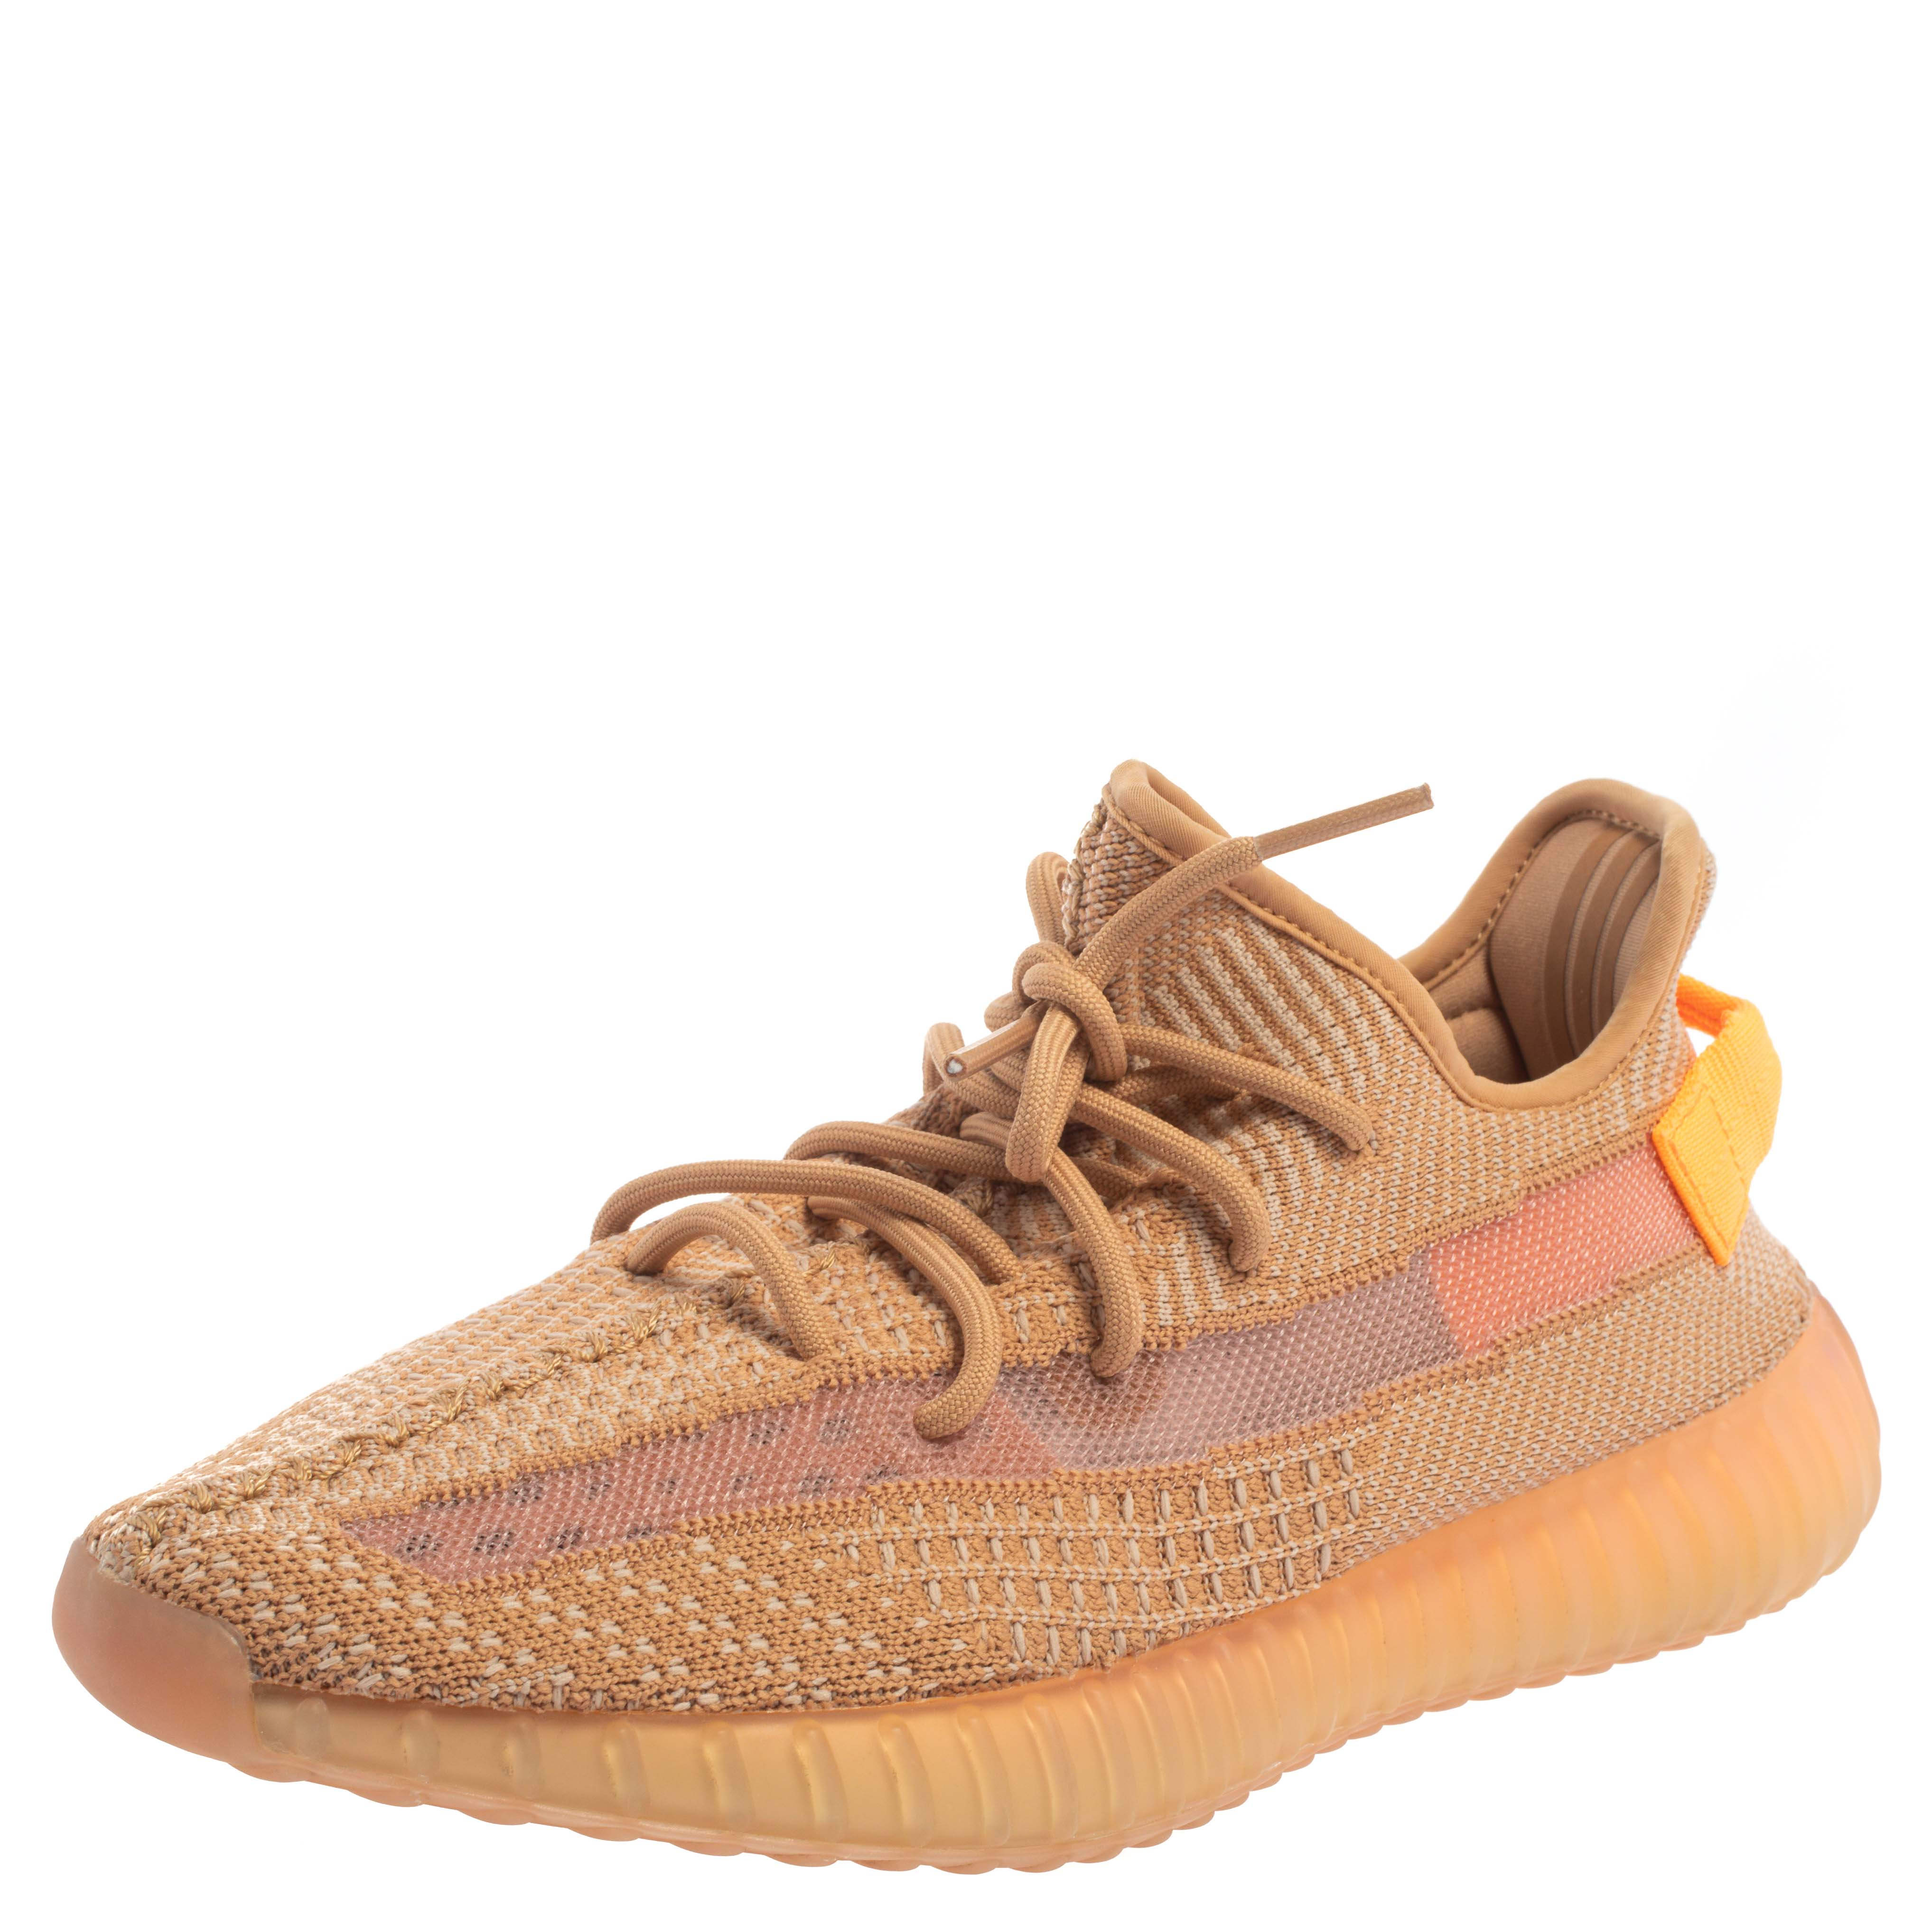 Adidas Yeezy Boost 350 V2 Cotton Knit Clay Sneakers Size 42 2/3